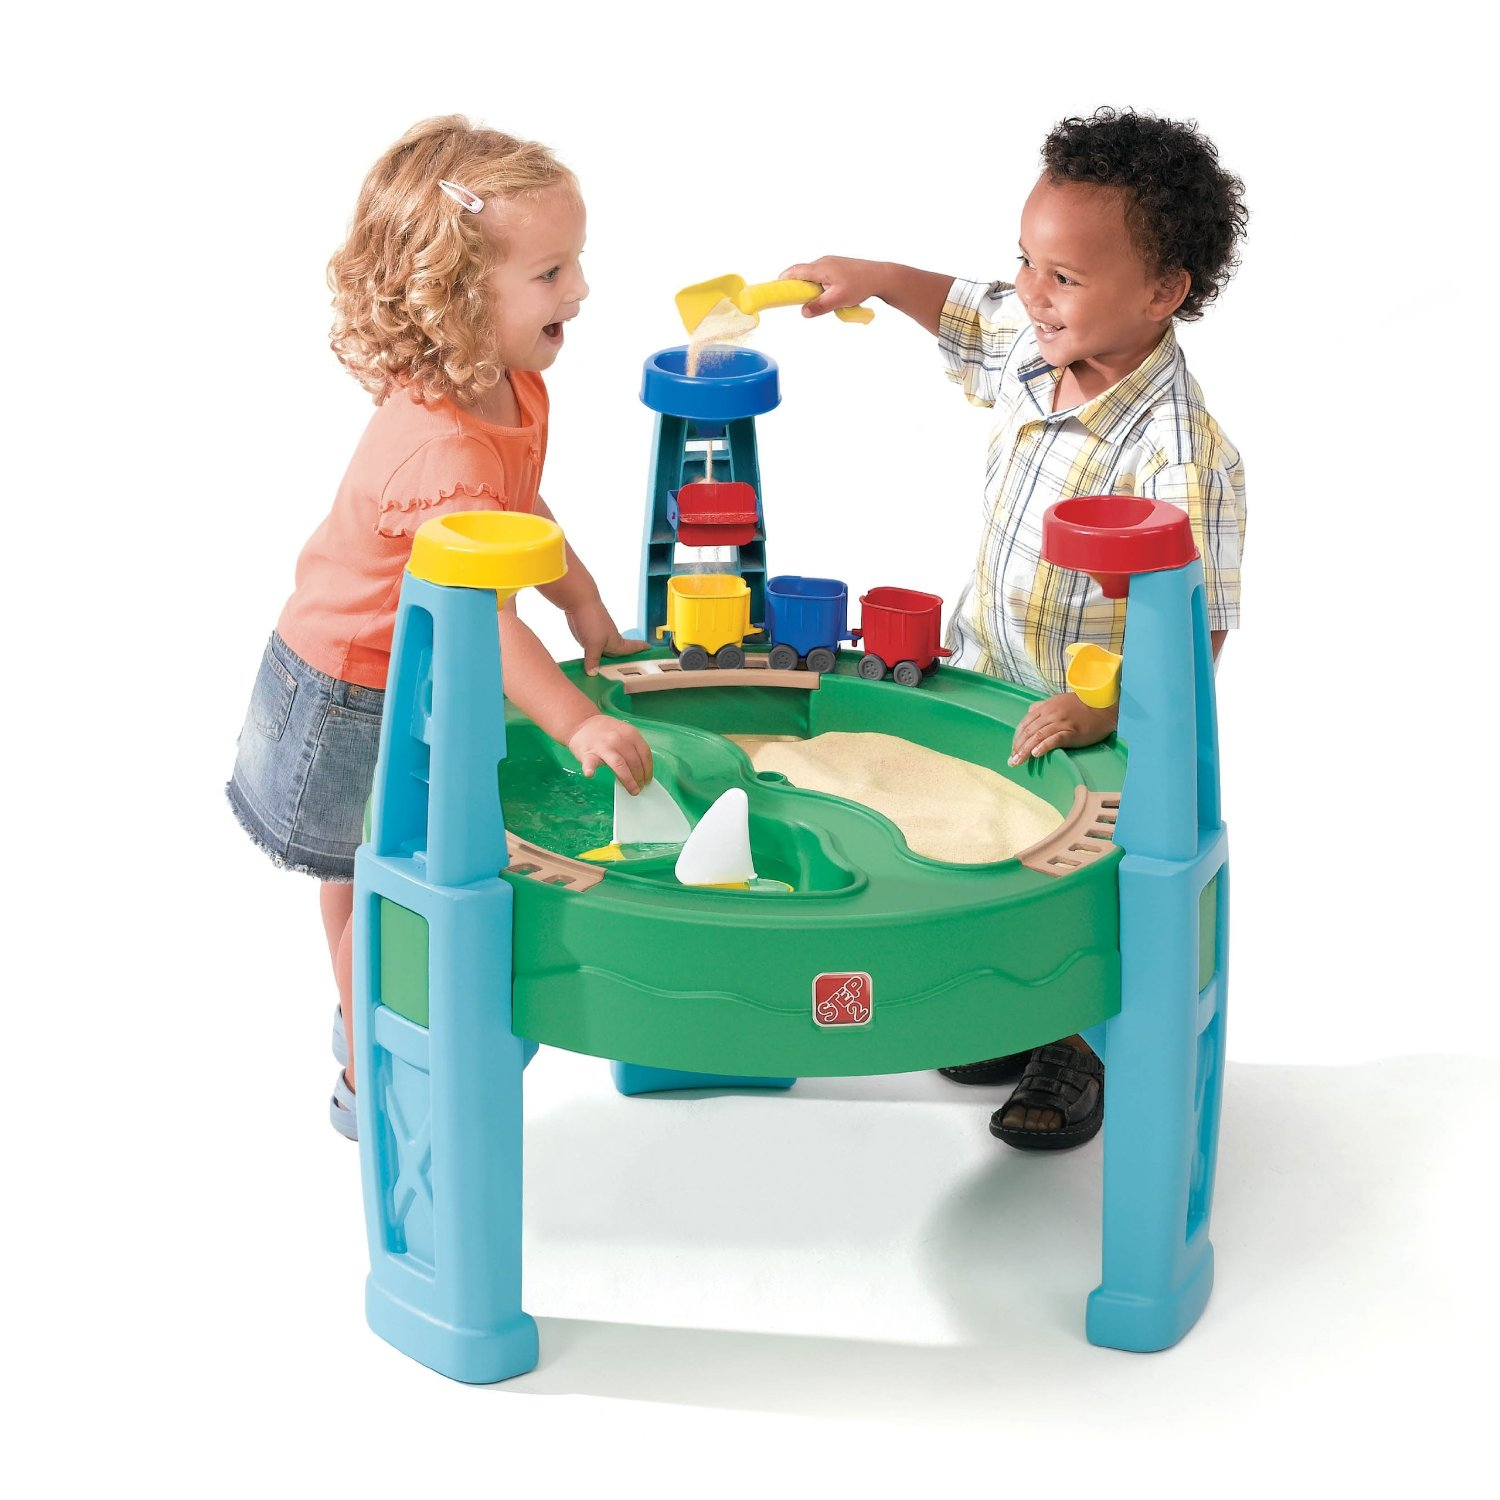 Step2 Splash N Scoop Bay ($29.99)